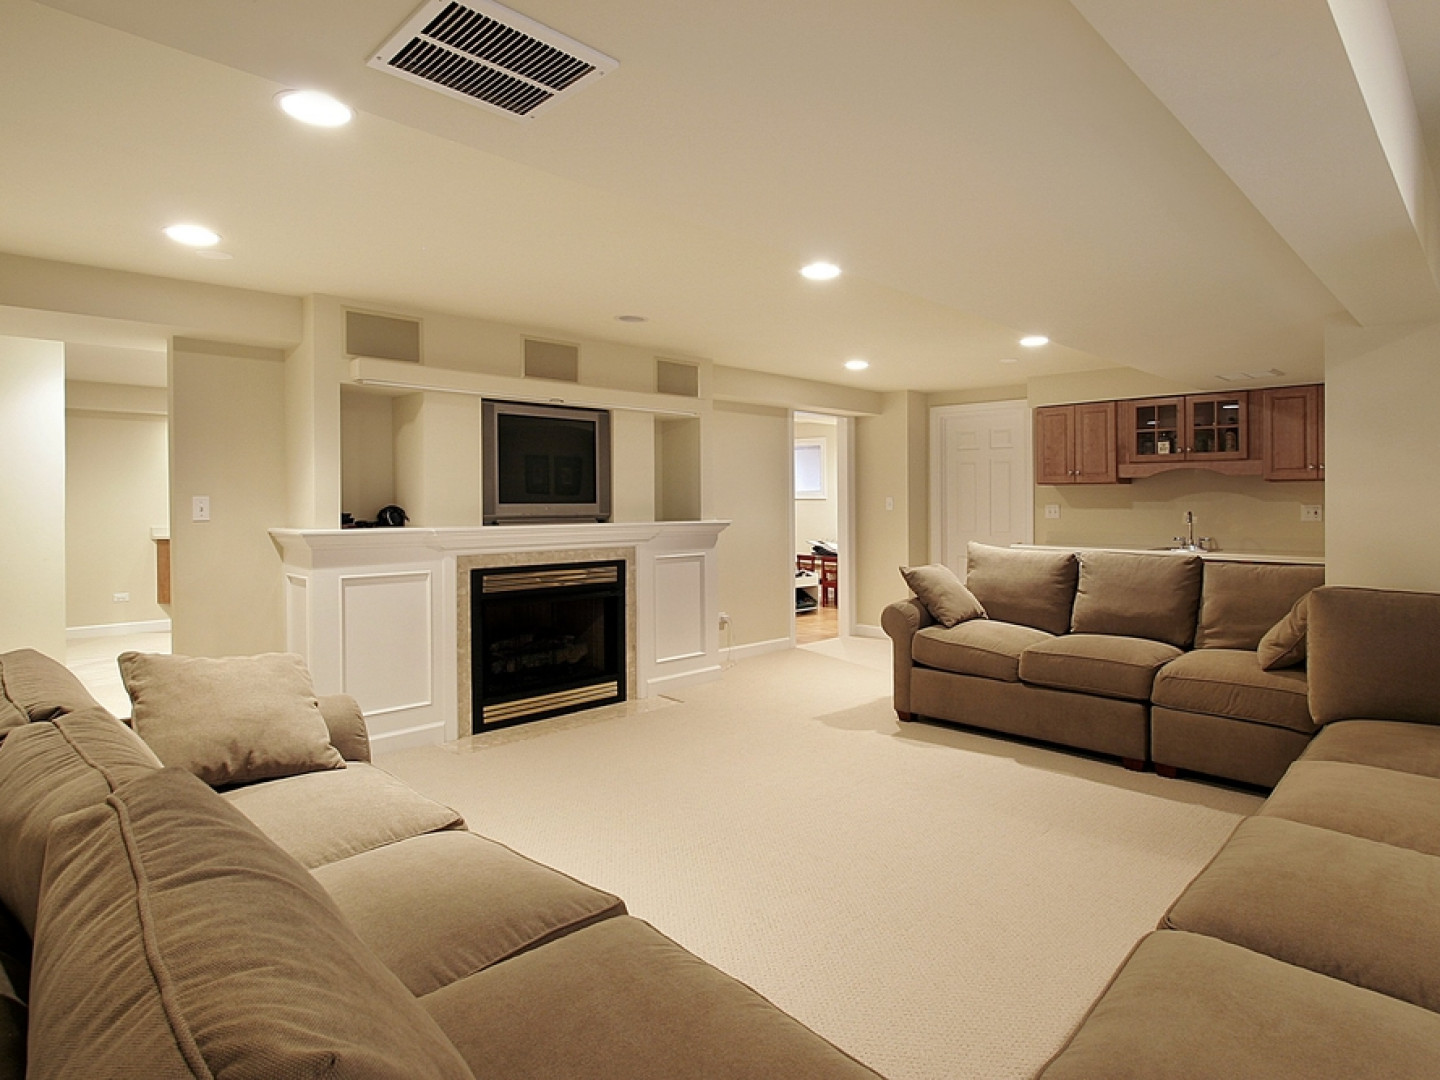 interior home remodeling west palm beach fl